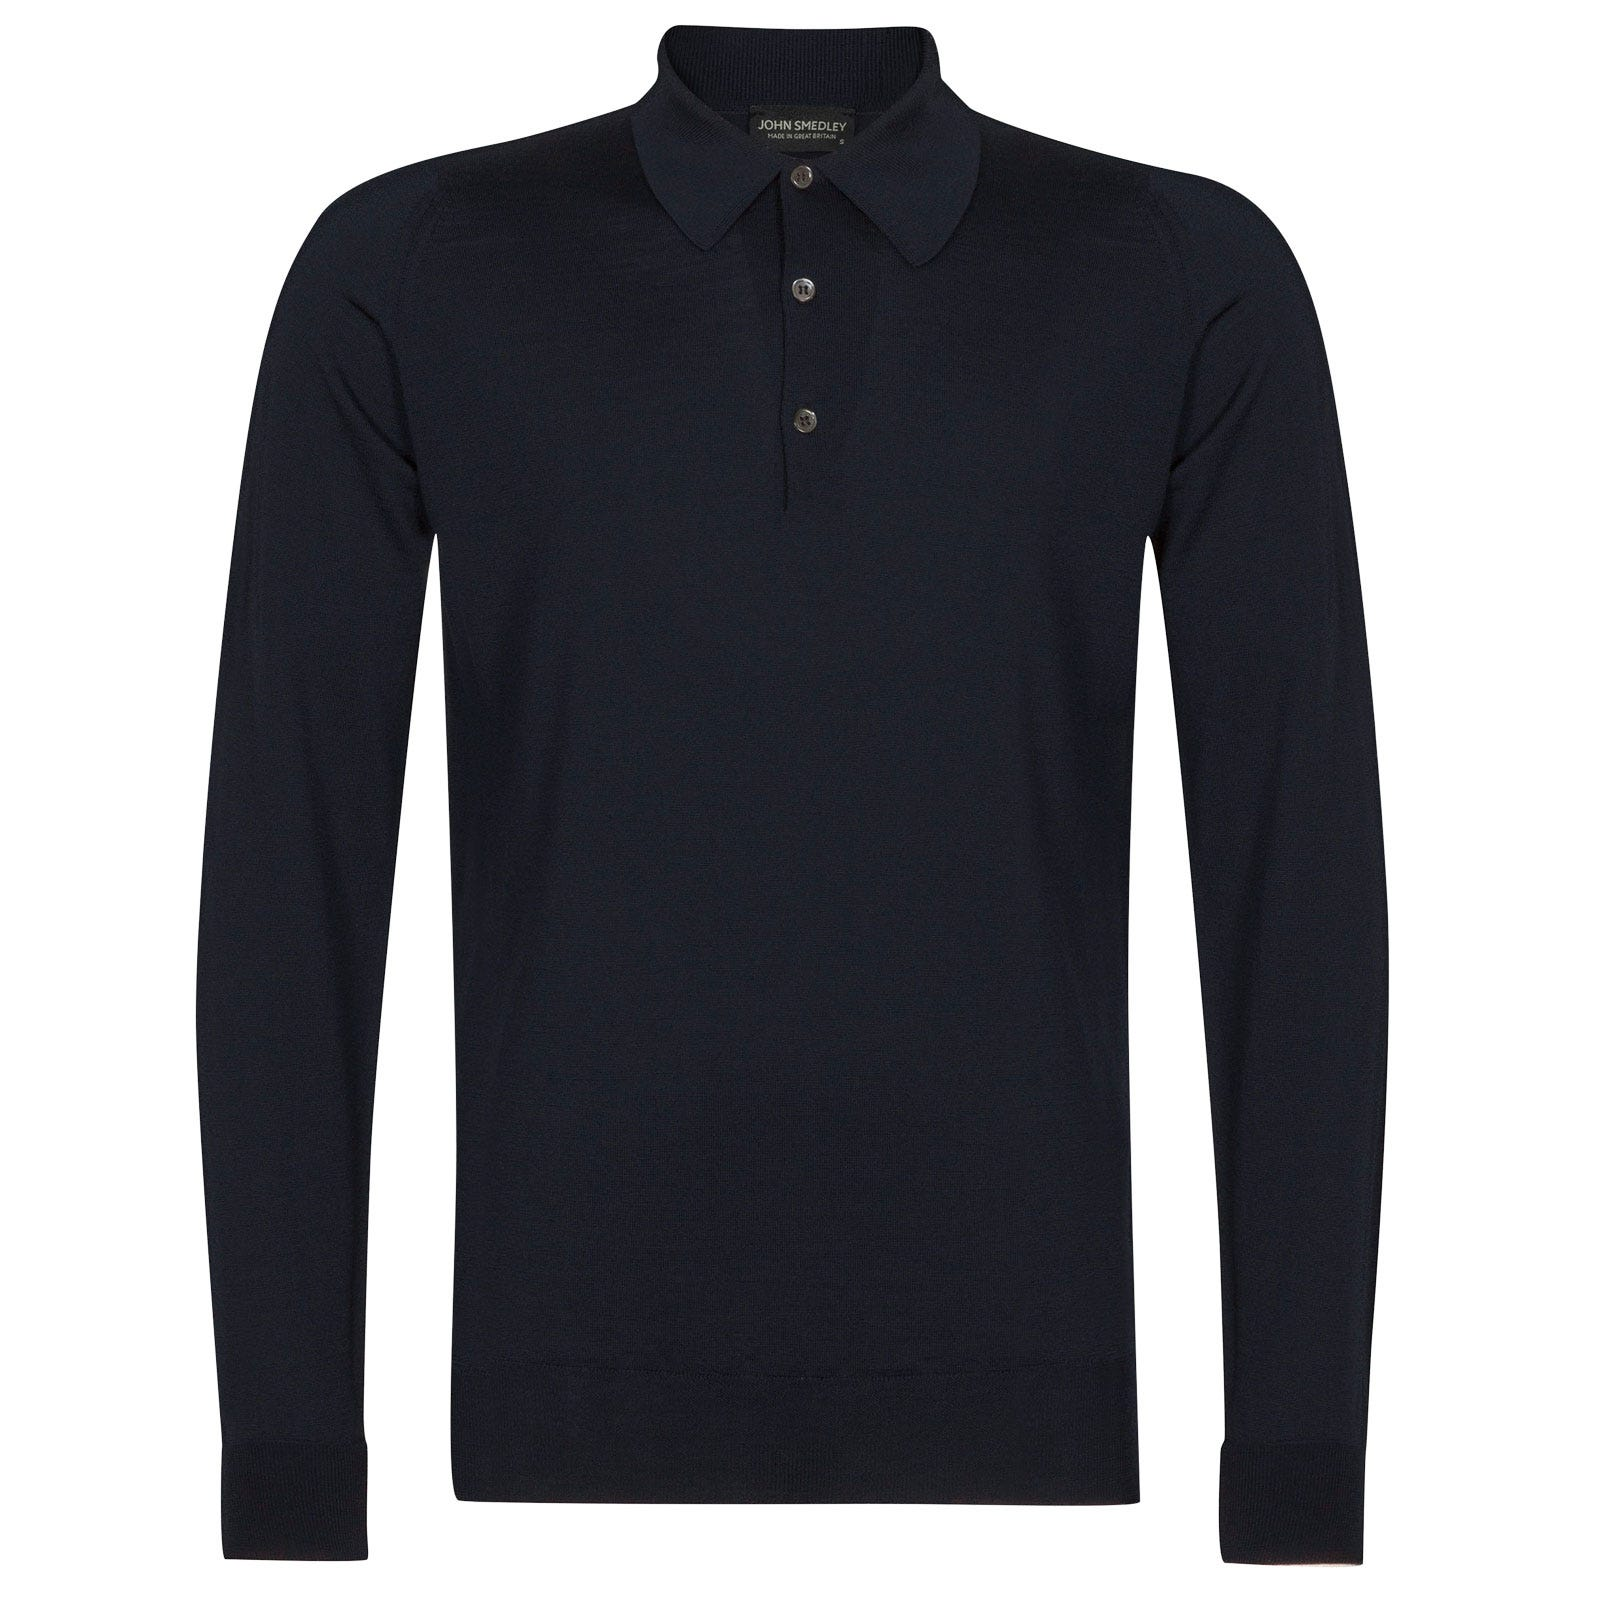 John Smedley dorset Merino Wool Shirt in Midnight-S